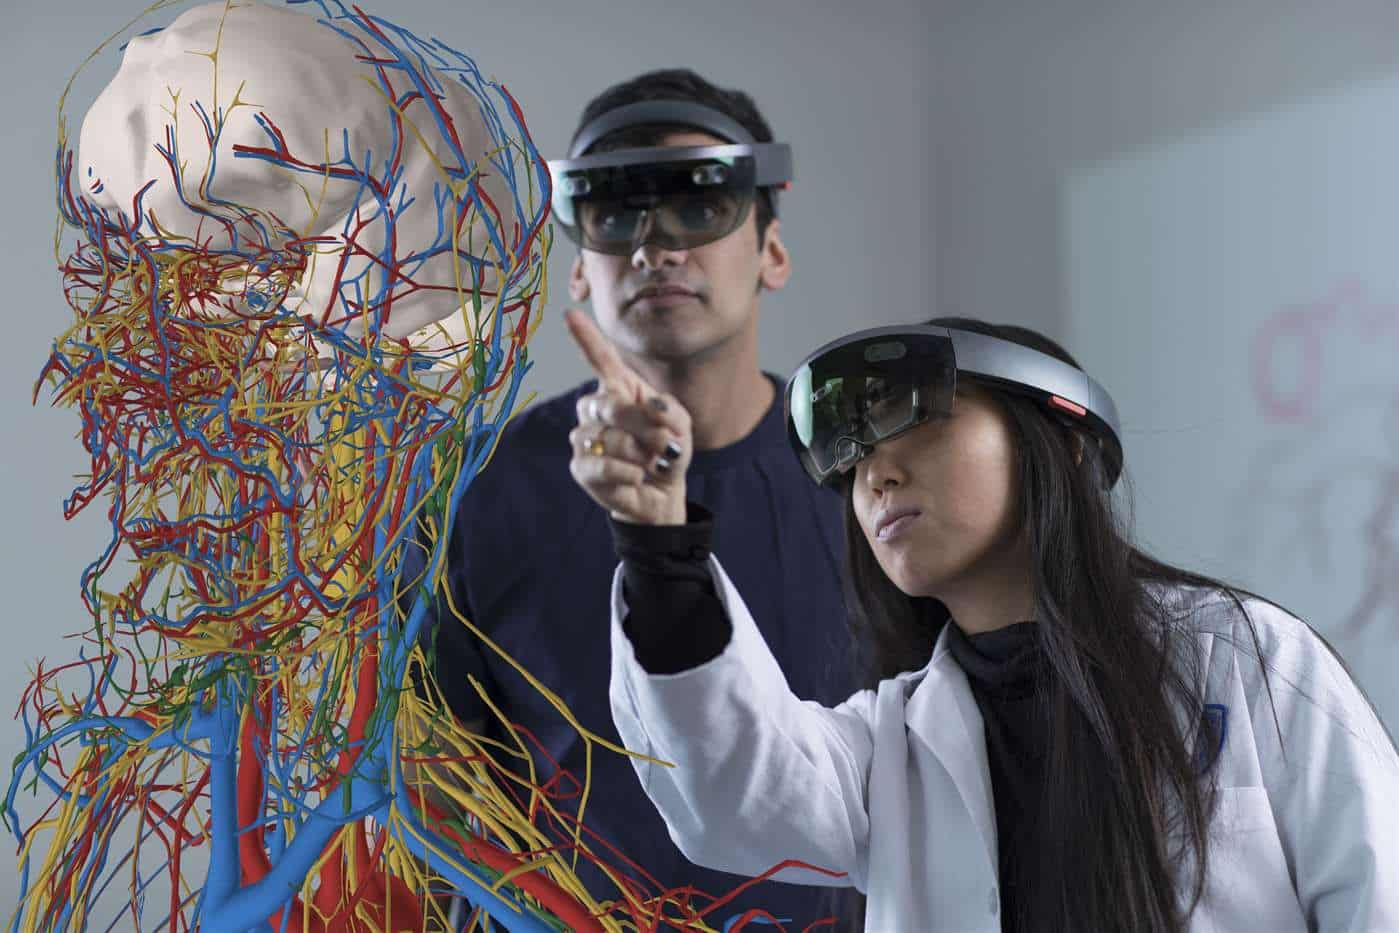 Learning will be transformed through VR and Mixed Reality.